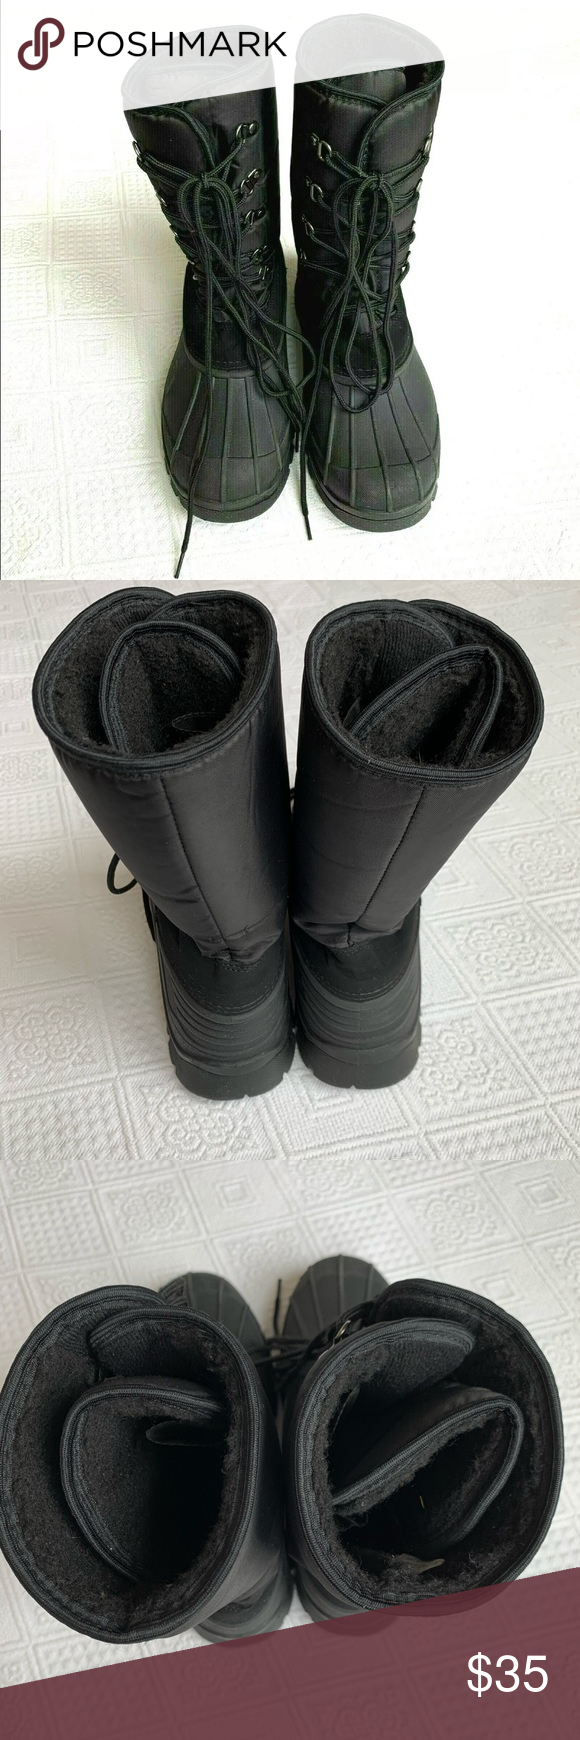 Mens snow boots, Winter boots, Snow boots